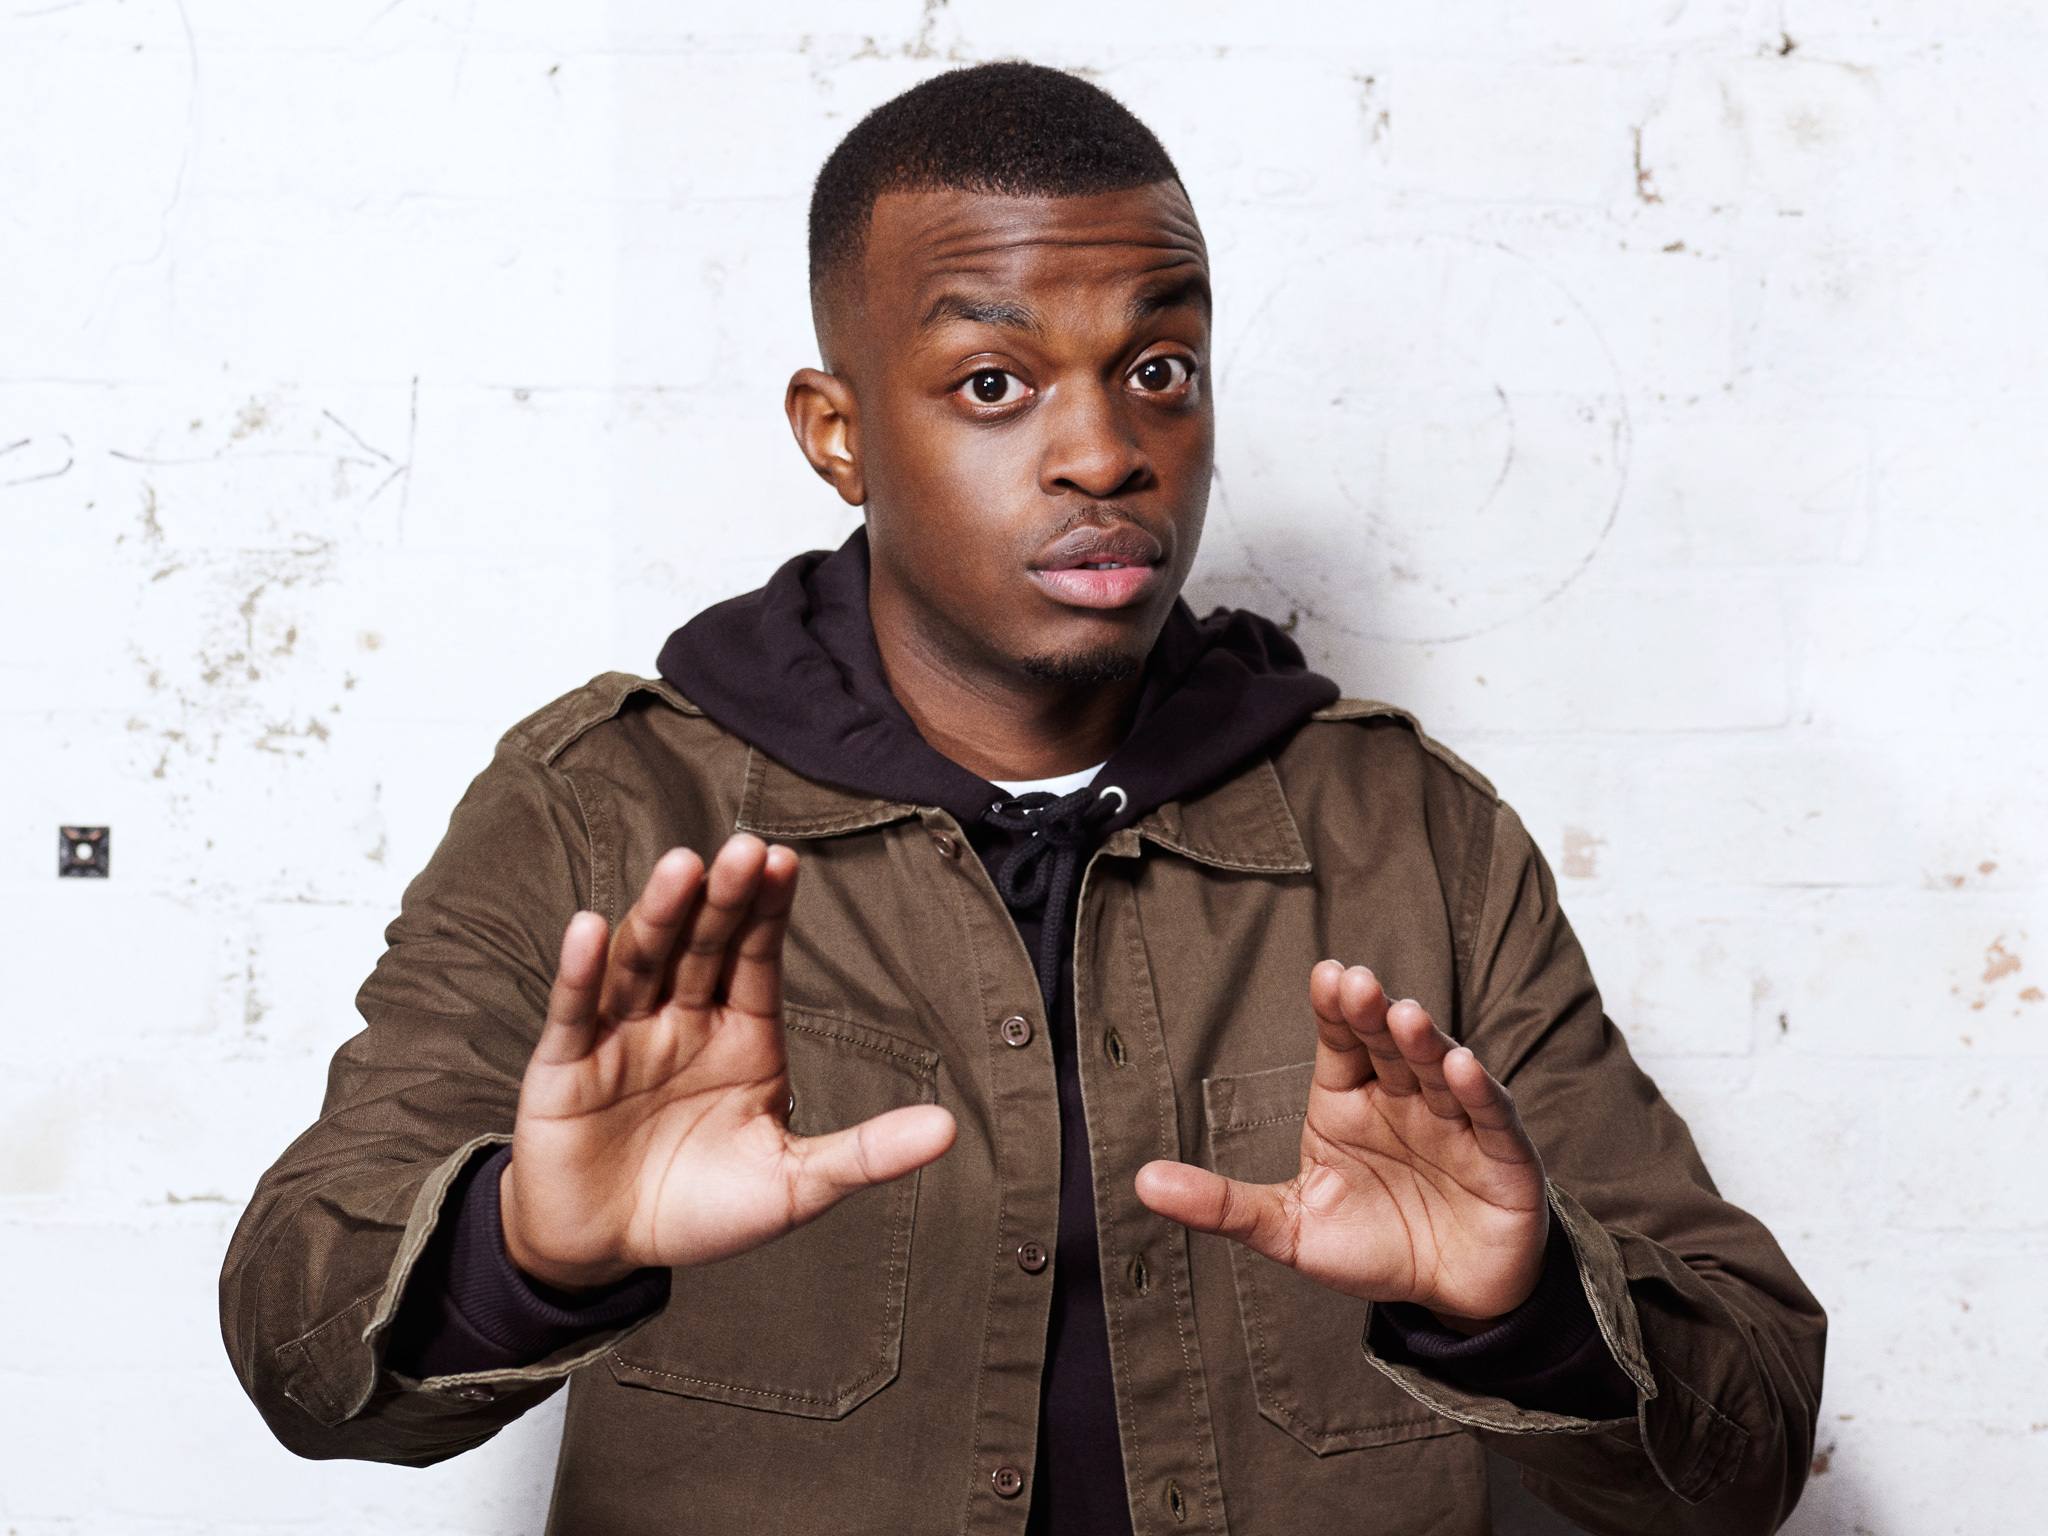 George The Poet wants to change the system